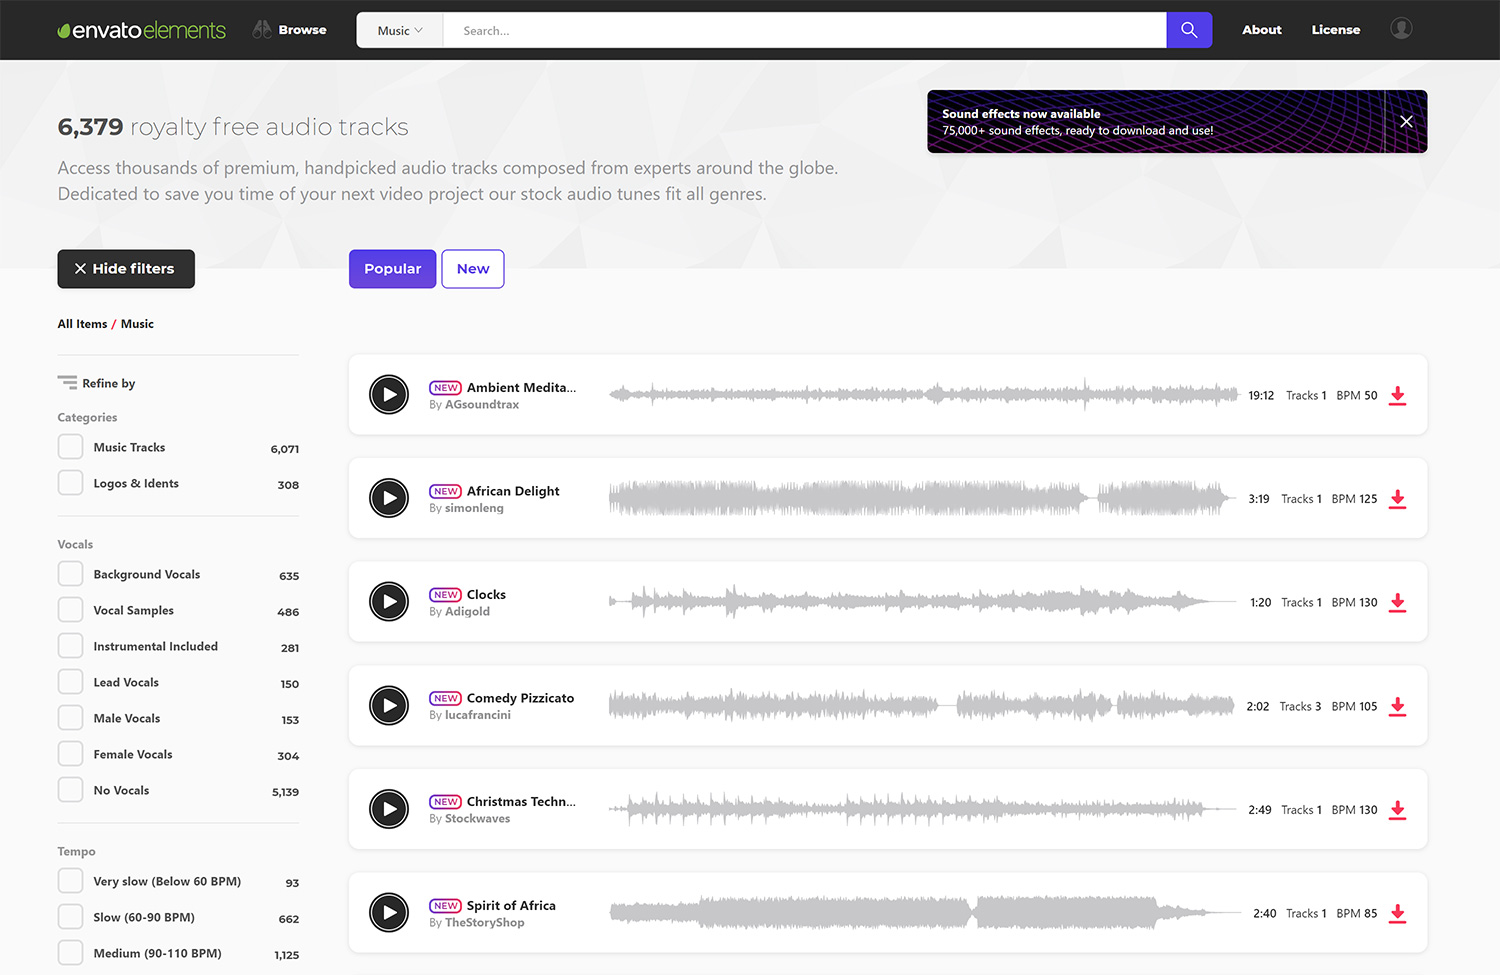 envato elements royalty free music audio tracks